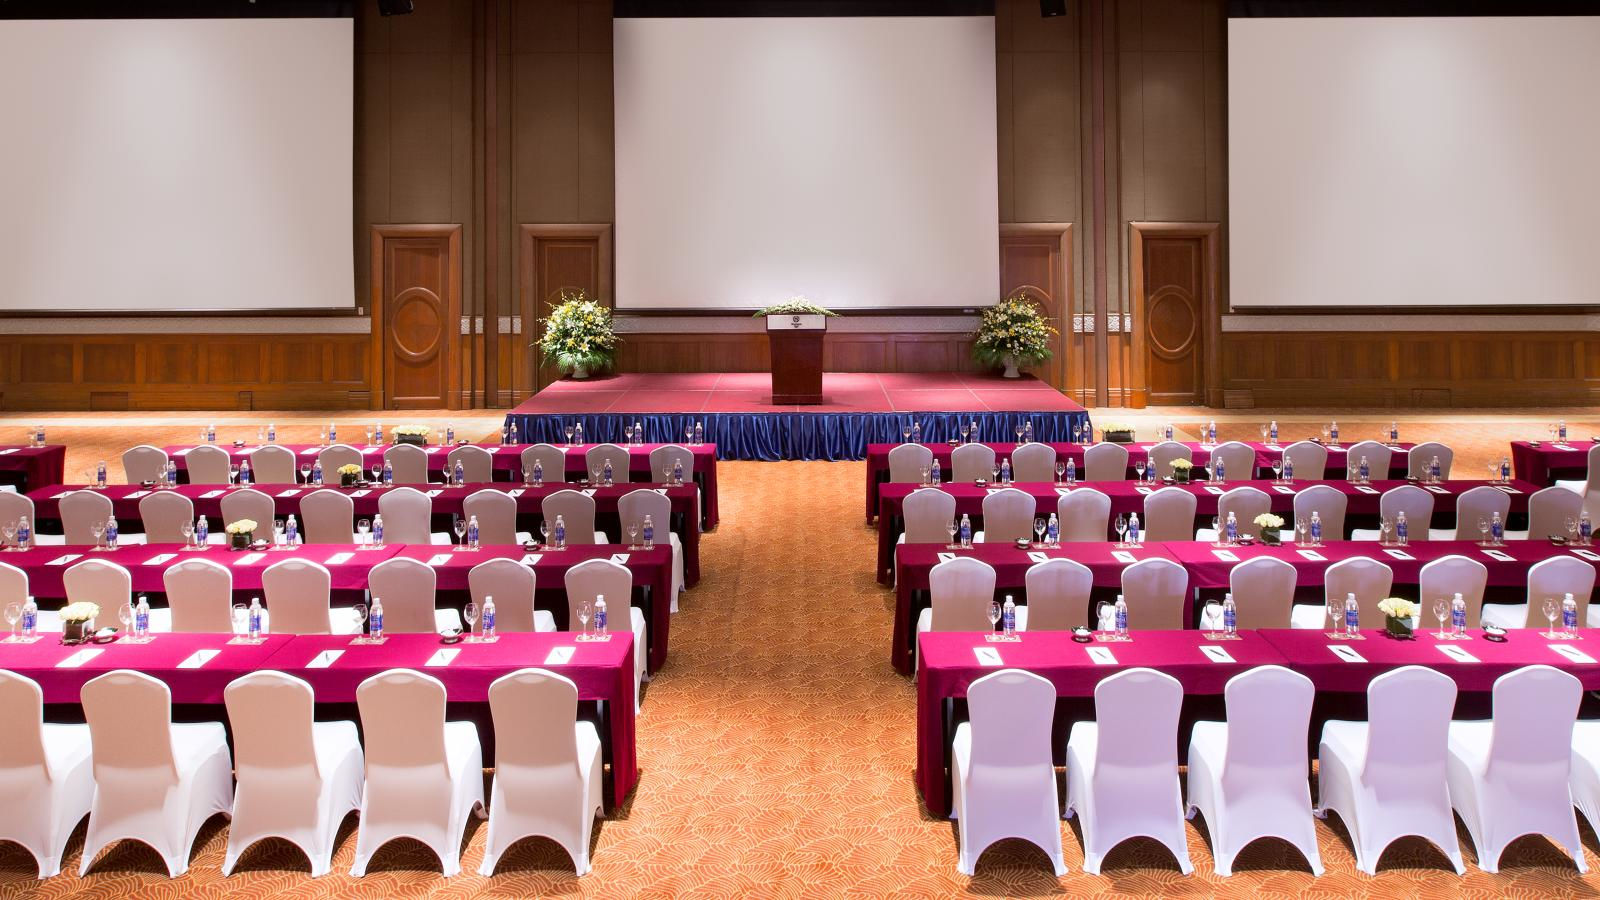 Sheraton Hanoi Hotel - The Song Hong Grand Ballroom classroom set up